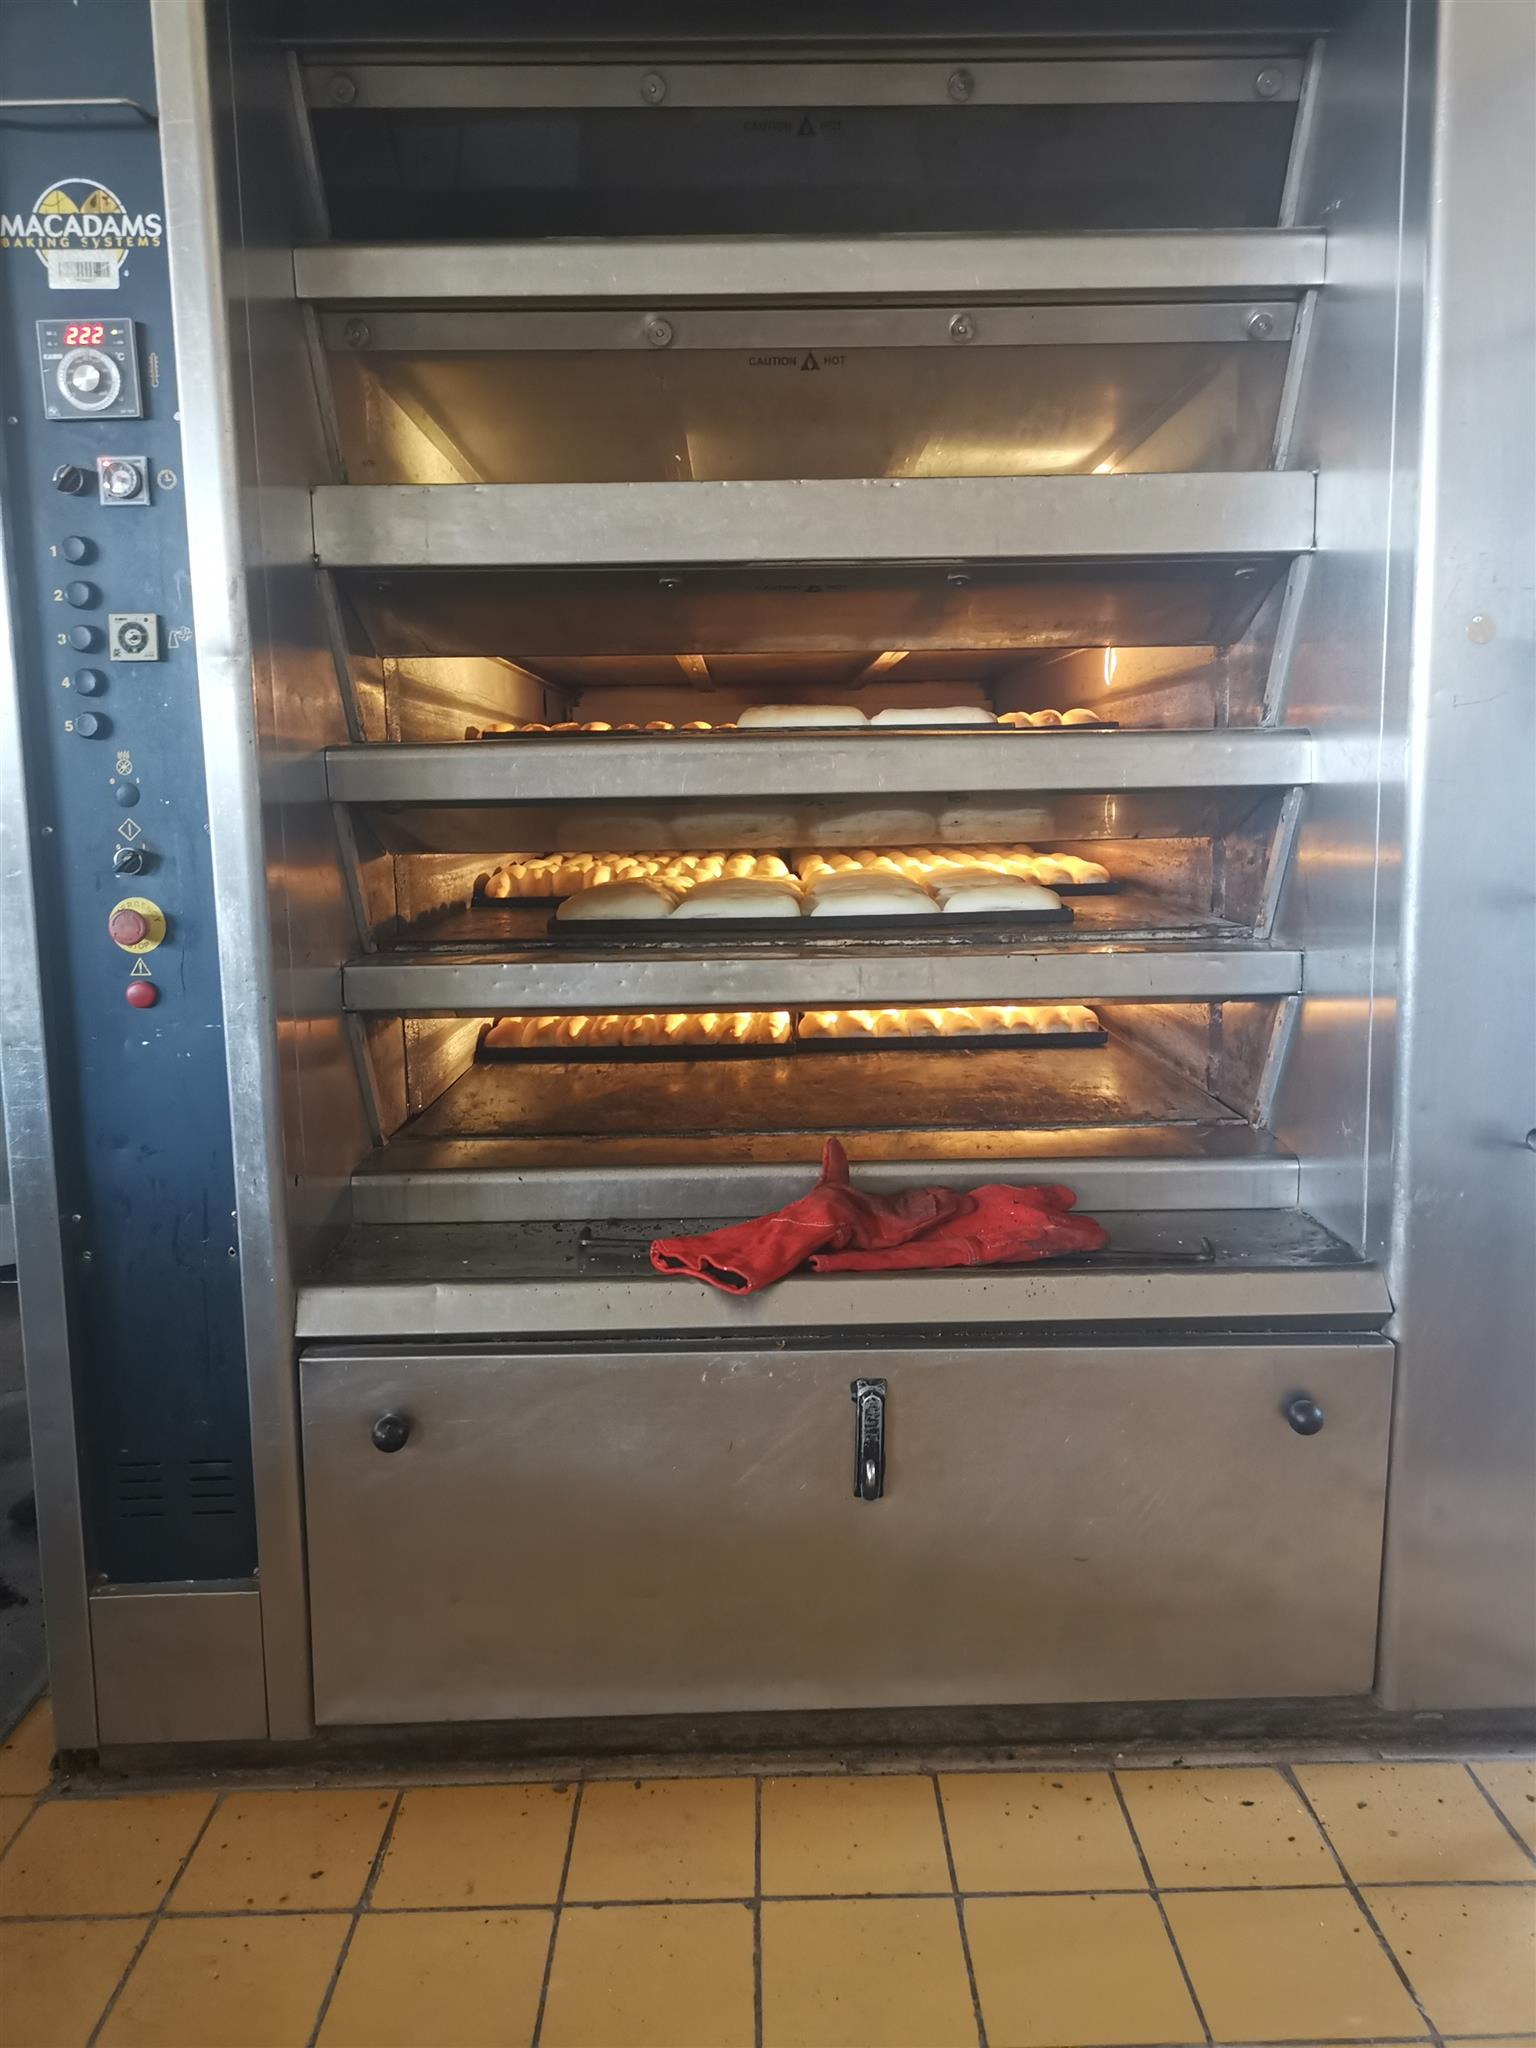 BAKERY OVEN MACADAMS 5 DECK WORKING CONDITION and 2 MIXERS